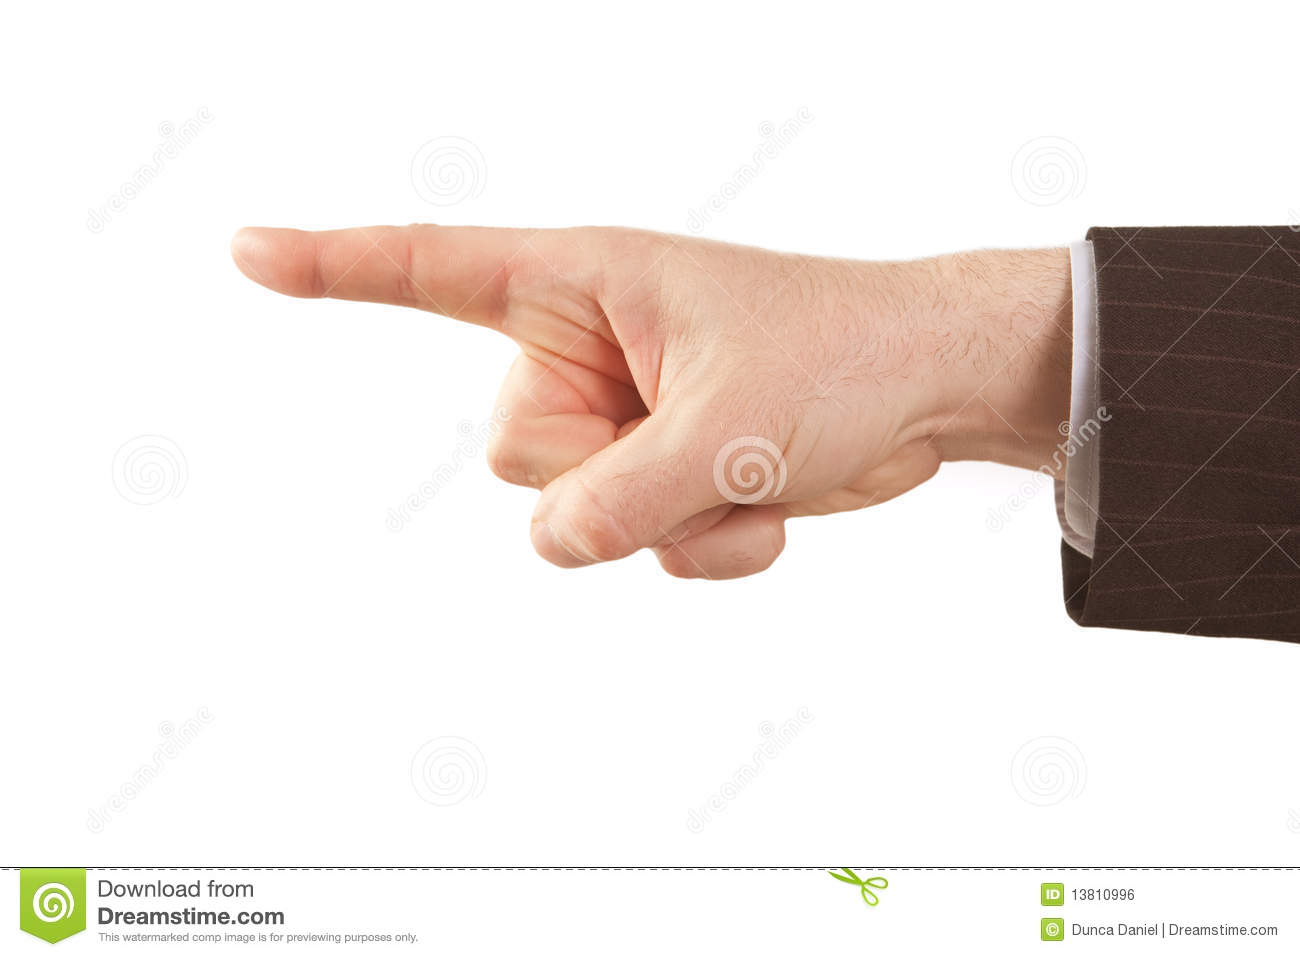 Royalty free stock image pointing finger of isolated businessman hand